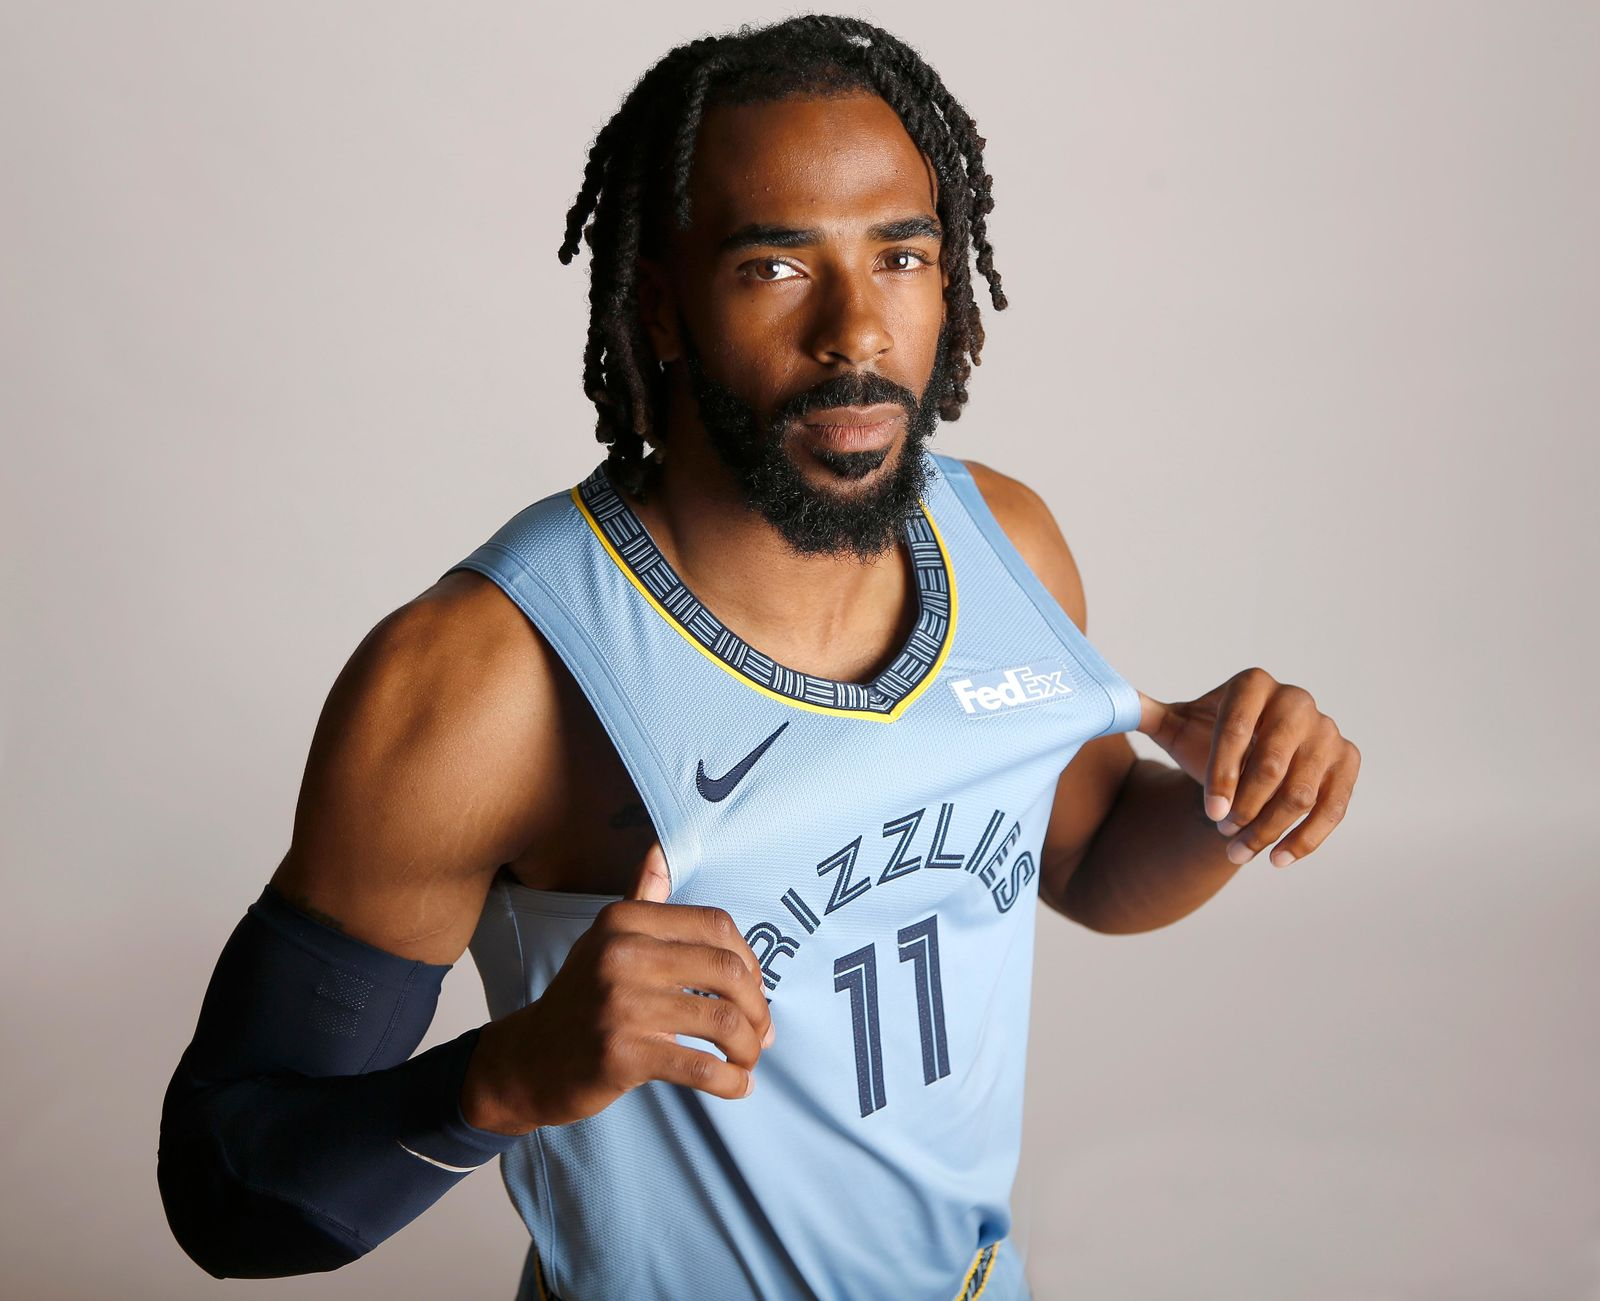 FILE - In this Sept. 24, 2018, file photo, Memphis Grizzlies guard Mike Conley poses during the team's NBA basketball media day  in Memphis, Tenn. A person with knowledge of the decision says the Memphis Grizzlies have traded veteran point guard Mike Conley, who has played the most games in franchise history, to the Utah Jazz. The person says the Grizzlies swapped Conley for Jae Crowder, Kyle Korver and Grayson Allen. The person spoke to The Associated Press Wednesday, June 19, 2019, on condition of anonymity because neither Memphis nor Utah has announced the trade. (AP Photo/File)